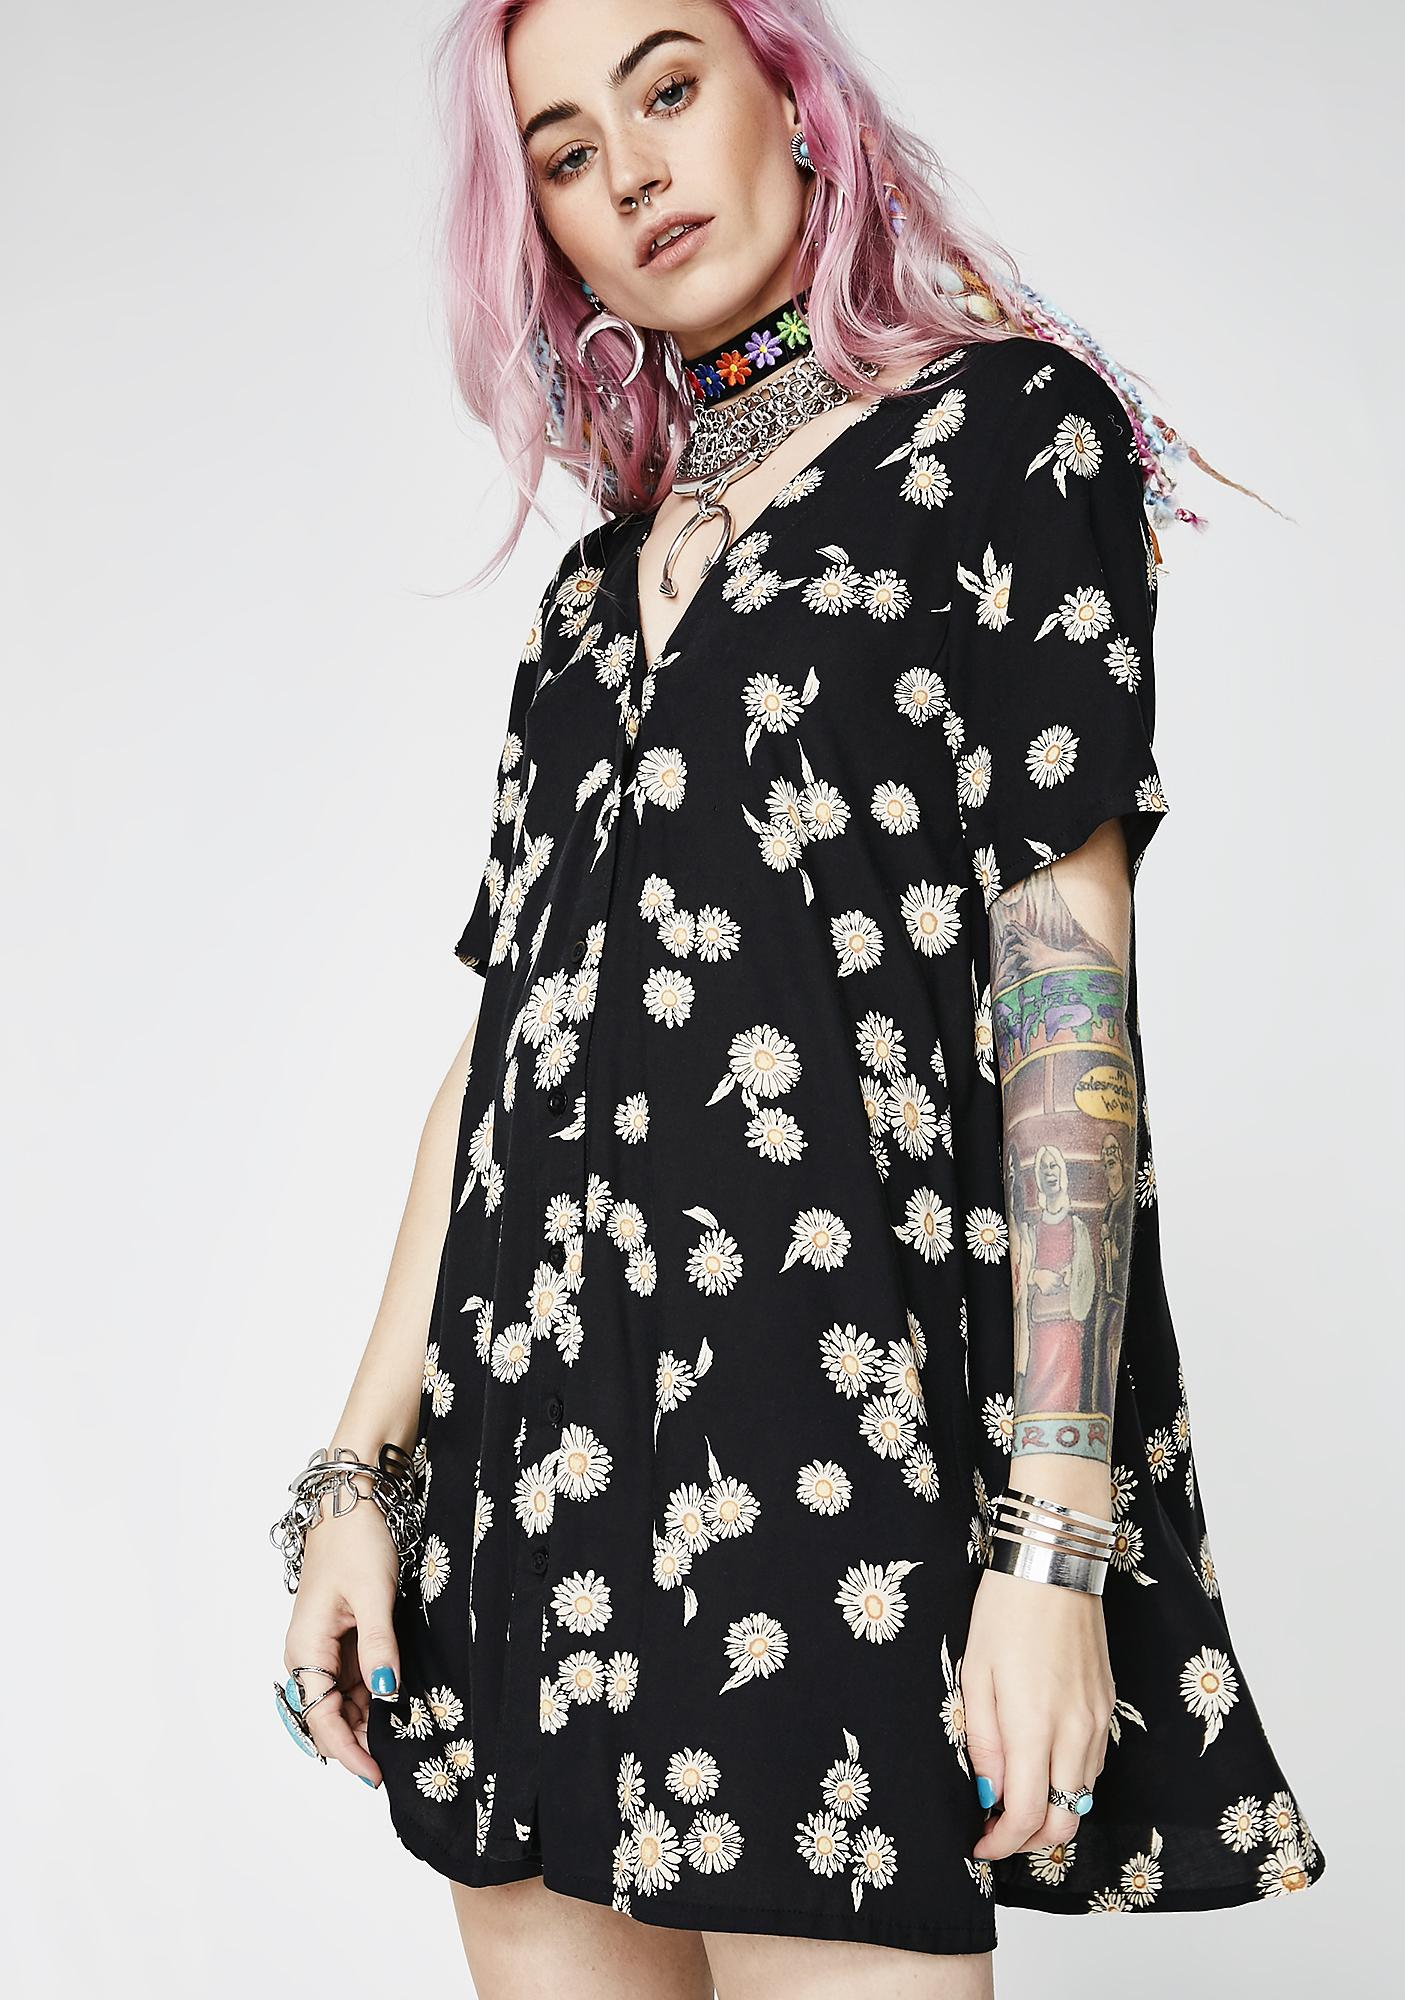 Motel Grunge Daisy Crosena Dress